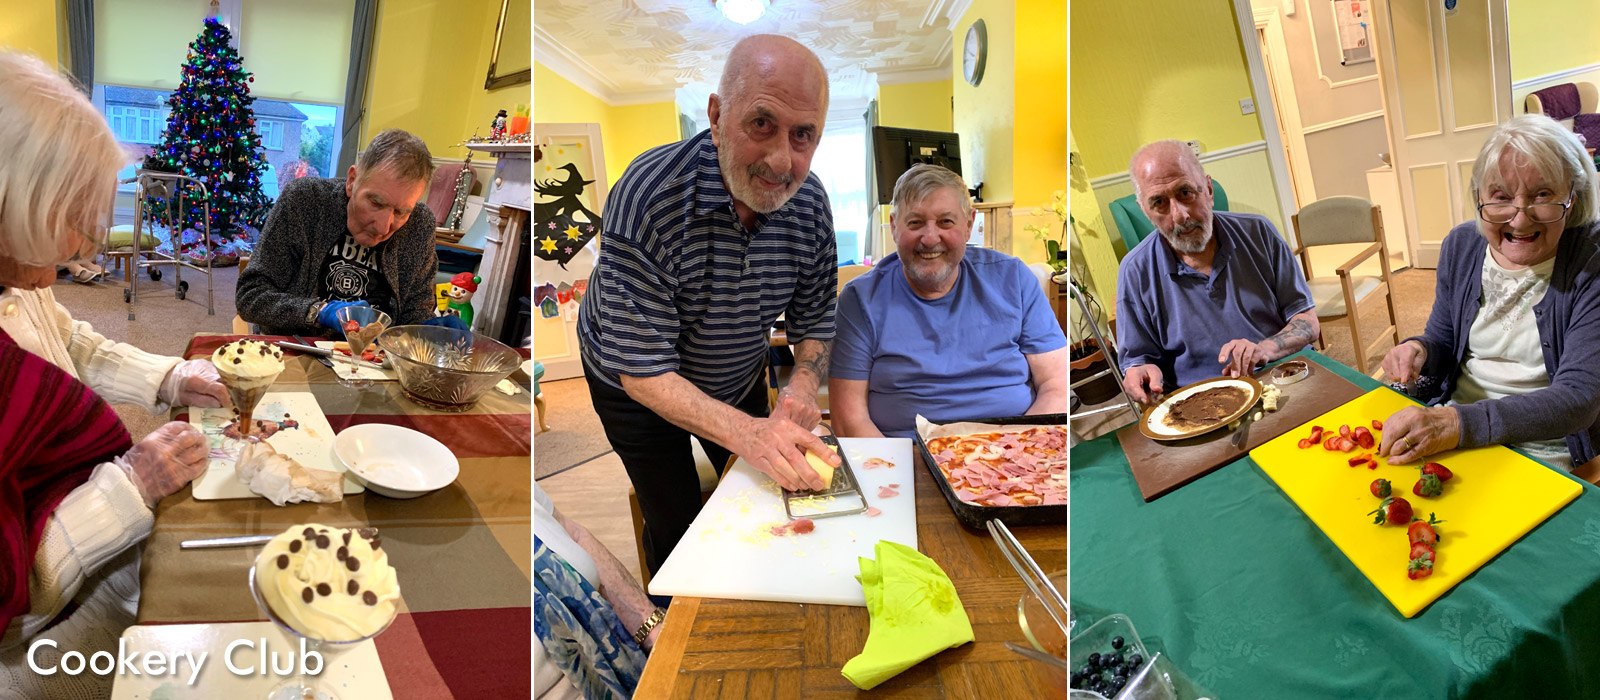 Activities at Grafton Lodge care home include cookery/baking